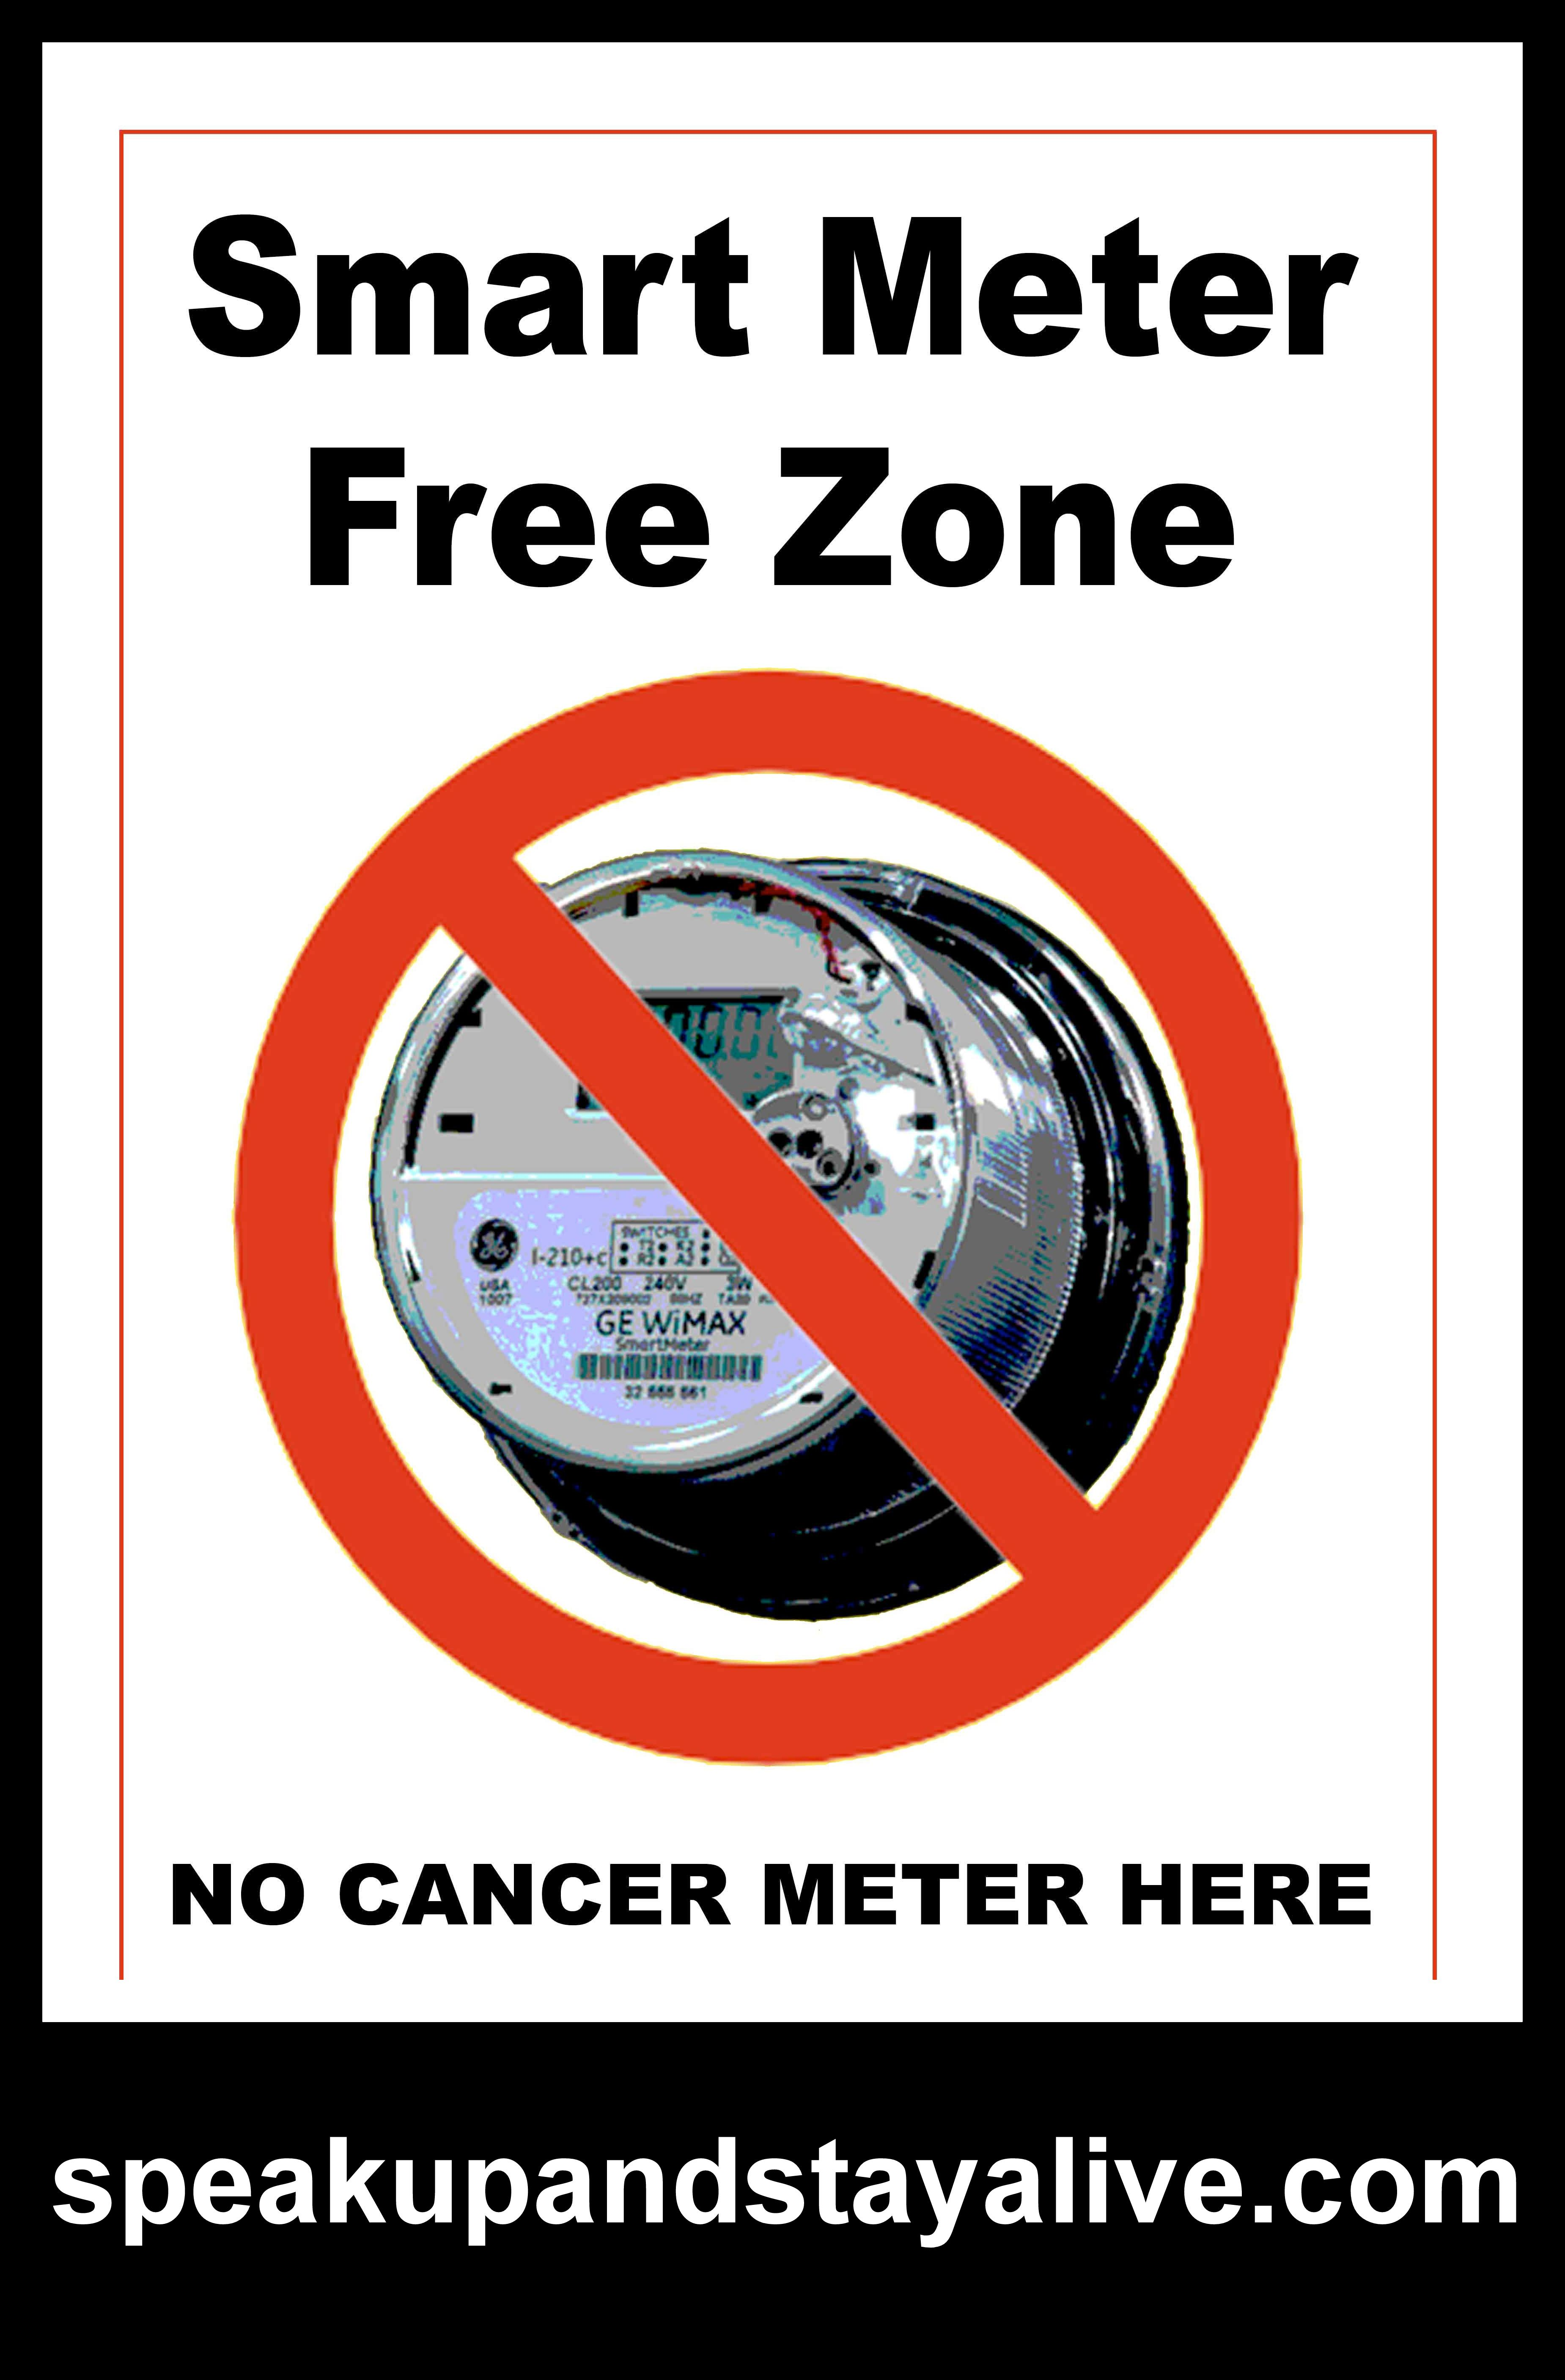 Smart Meter Opt Out Letter.Smart Meters Are A Health Hazard How To Opt Out How To